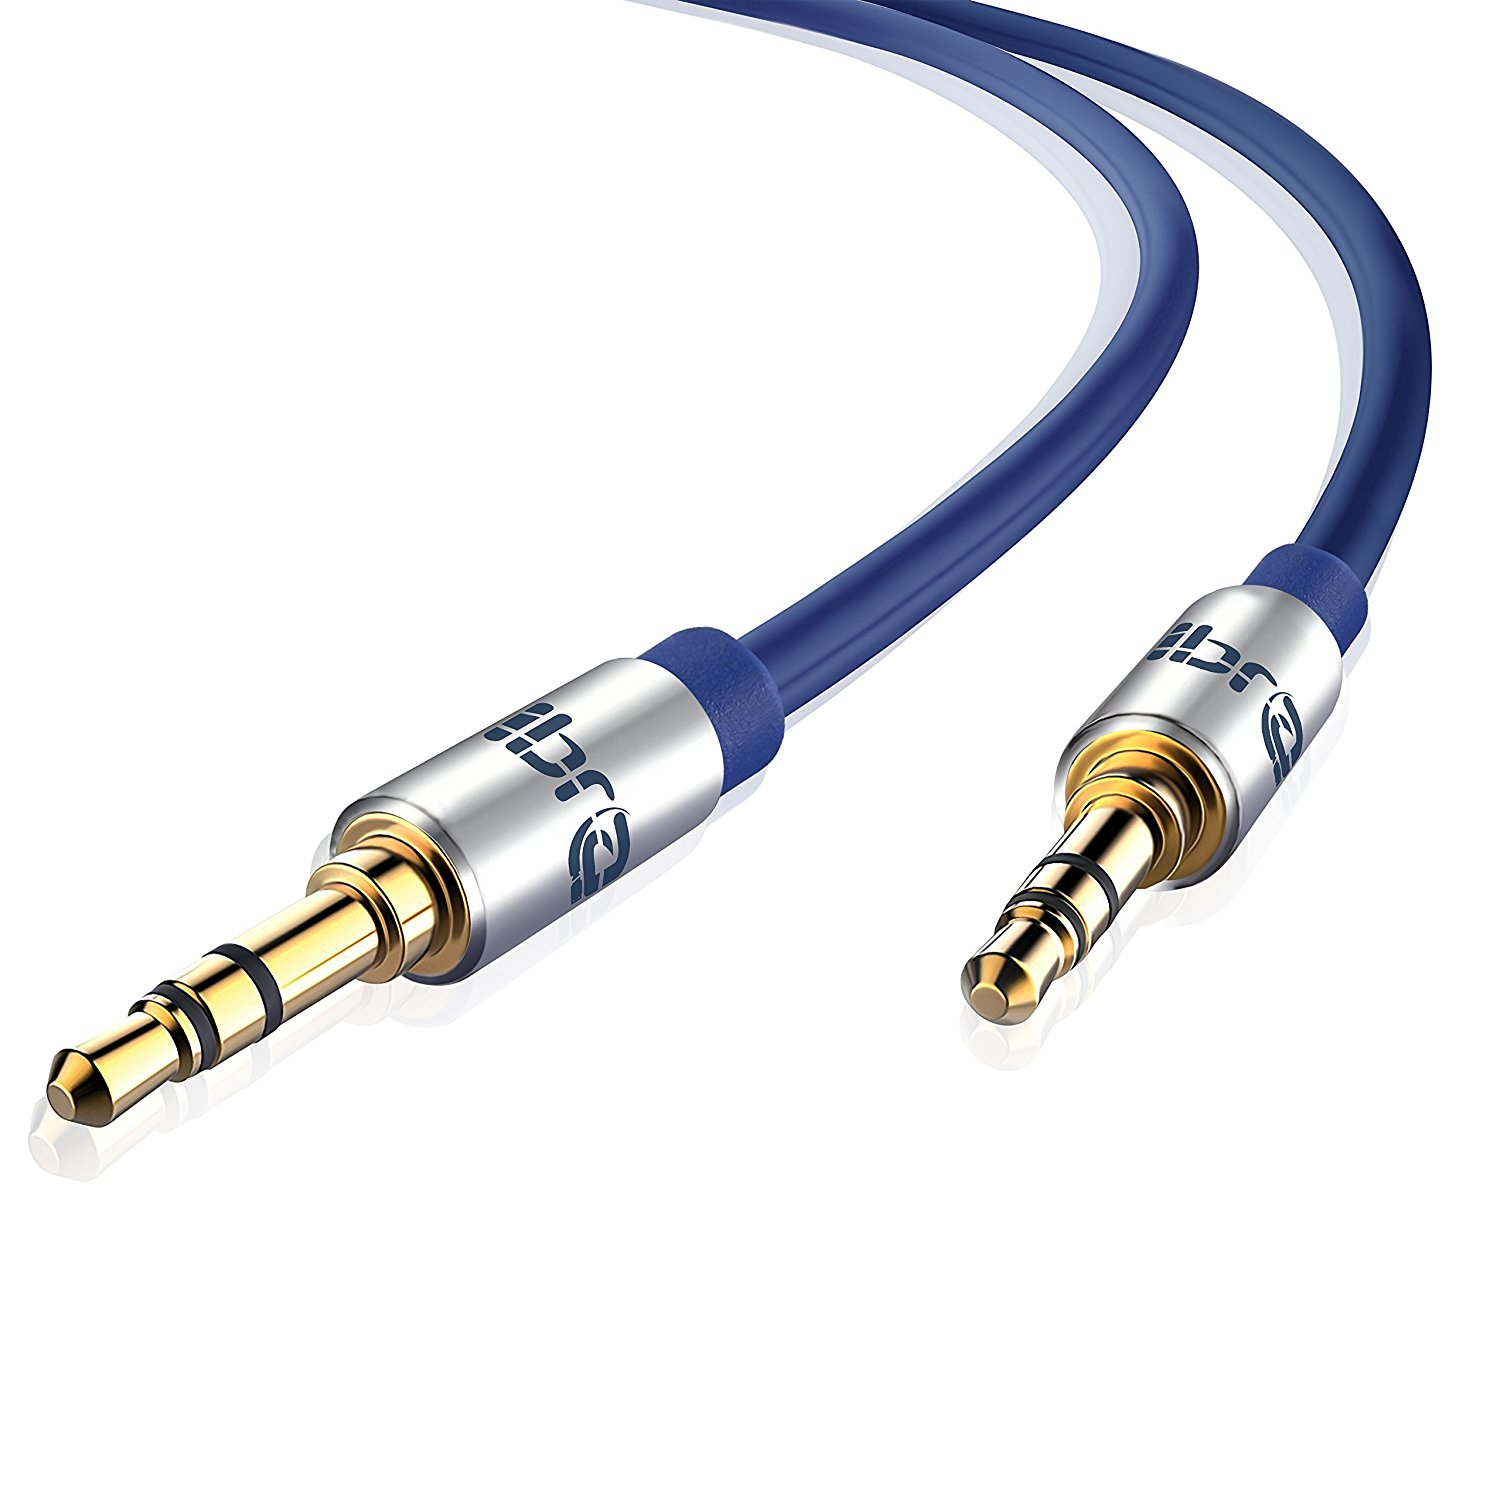 Aux Cable 10M 3.5mm Stereo Pro Auxiliary Audio Cable - for Beats Headphones Apple iPod iPhone iPad Samsung LG Smartphone MP3 Player Home / Car etc - IBRA Blue